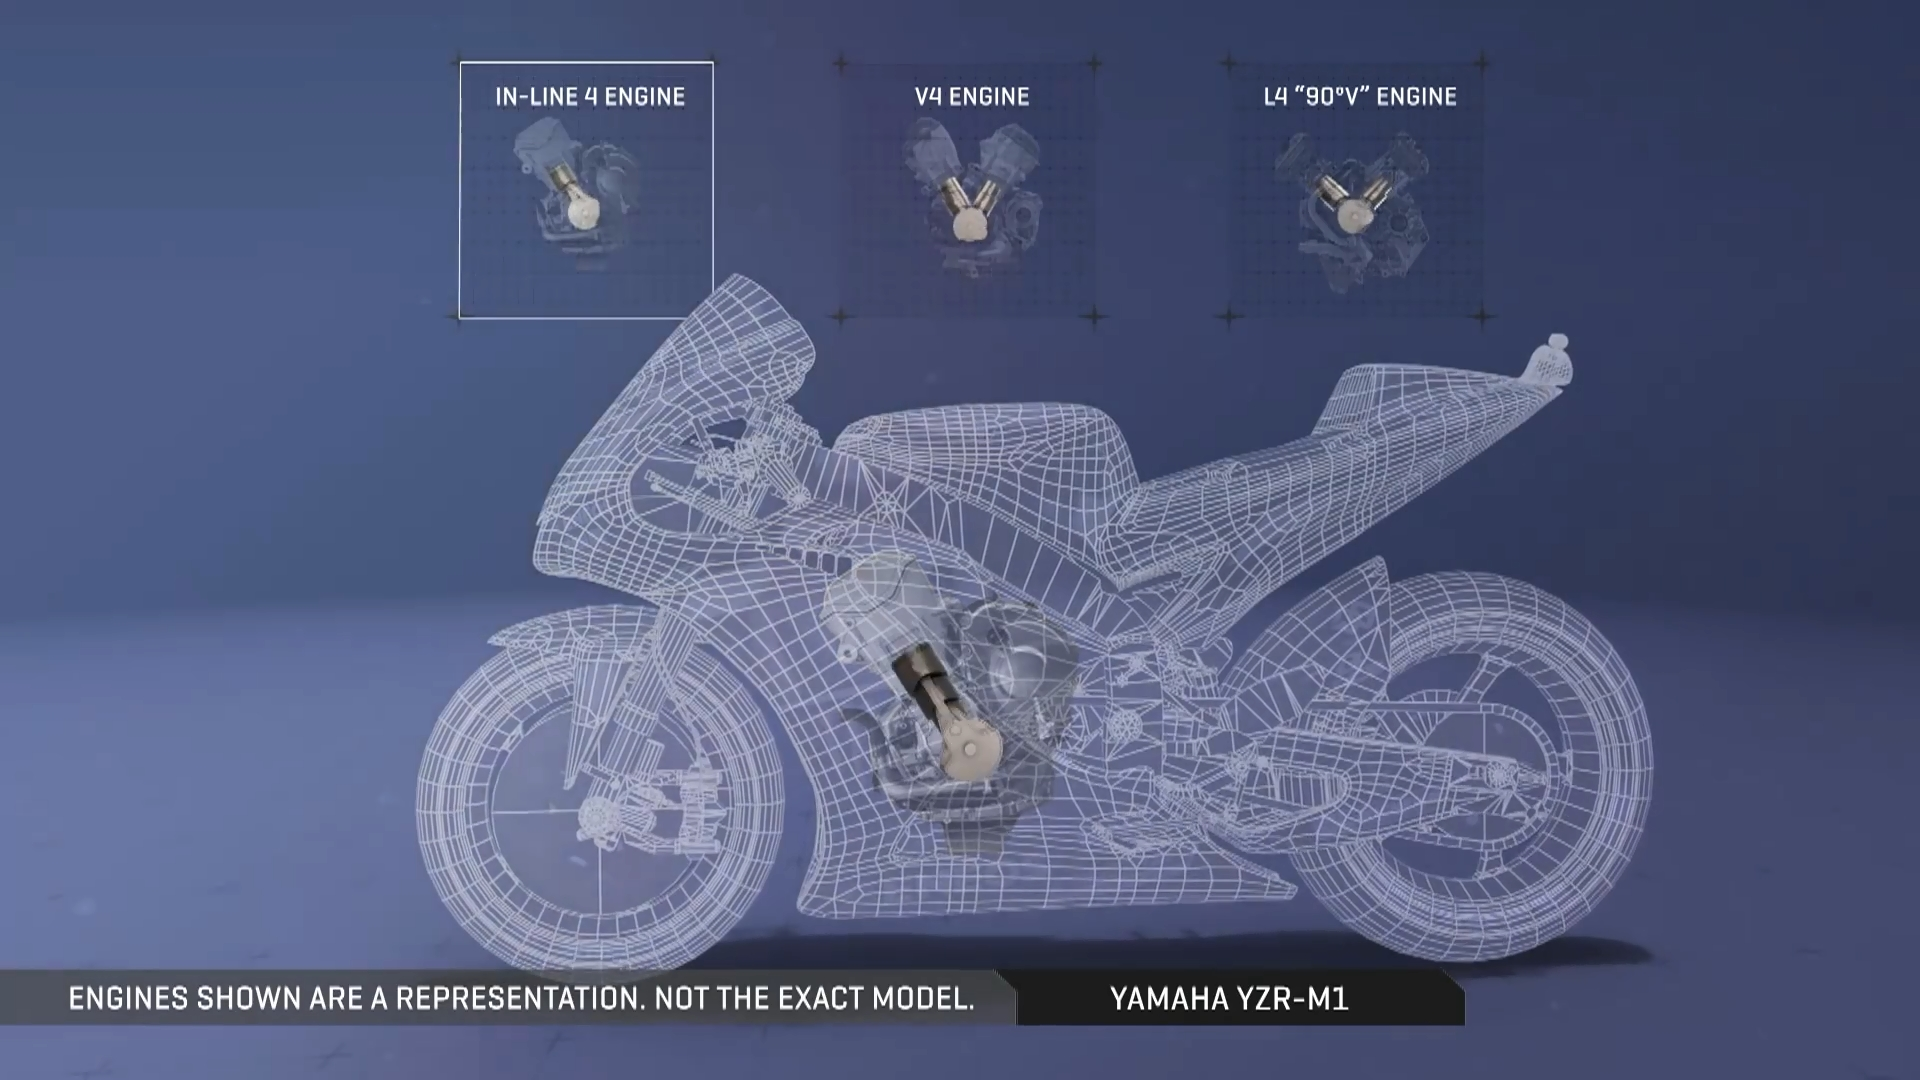 Yamaha YZR-M1 In-Line 4 Engine MotoGP 2017